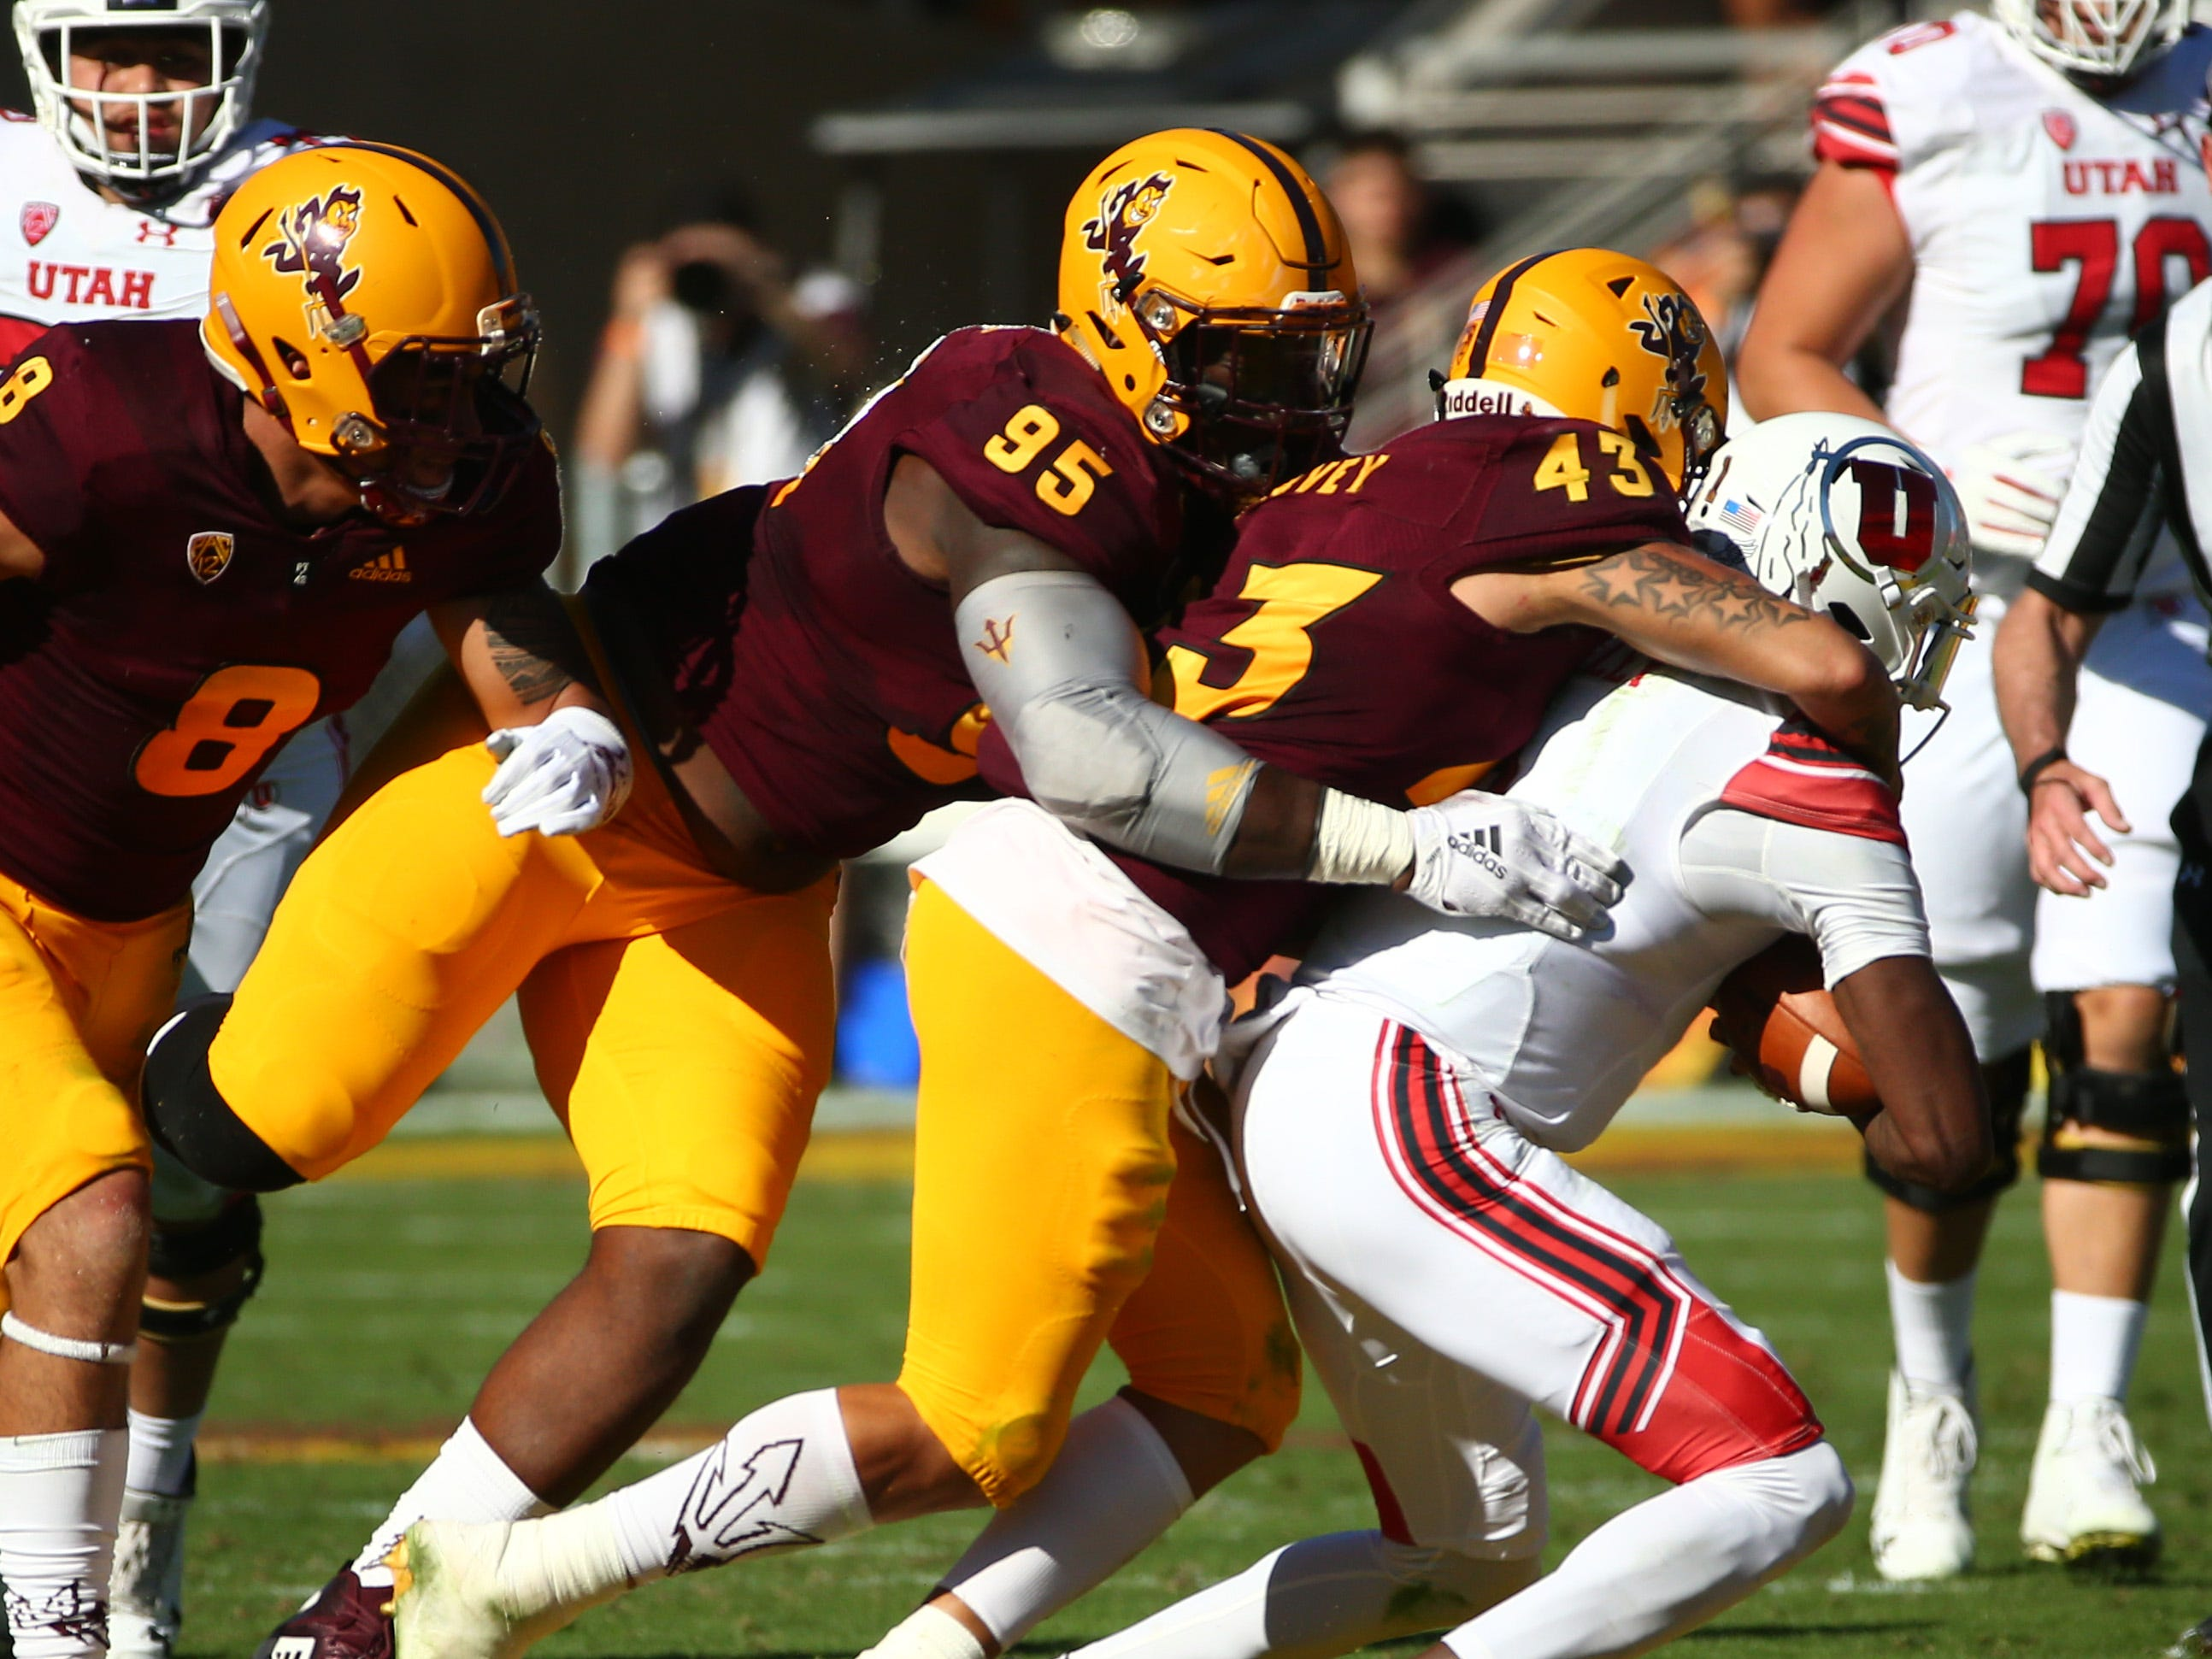 Arizona State's Jalen Harvey tackles Utah quarterback Tyler Huntley in the first half on Nov. 3 at Sun Devil Stadium.